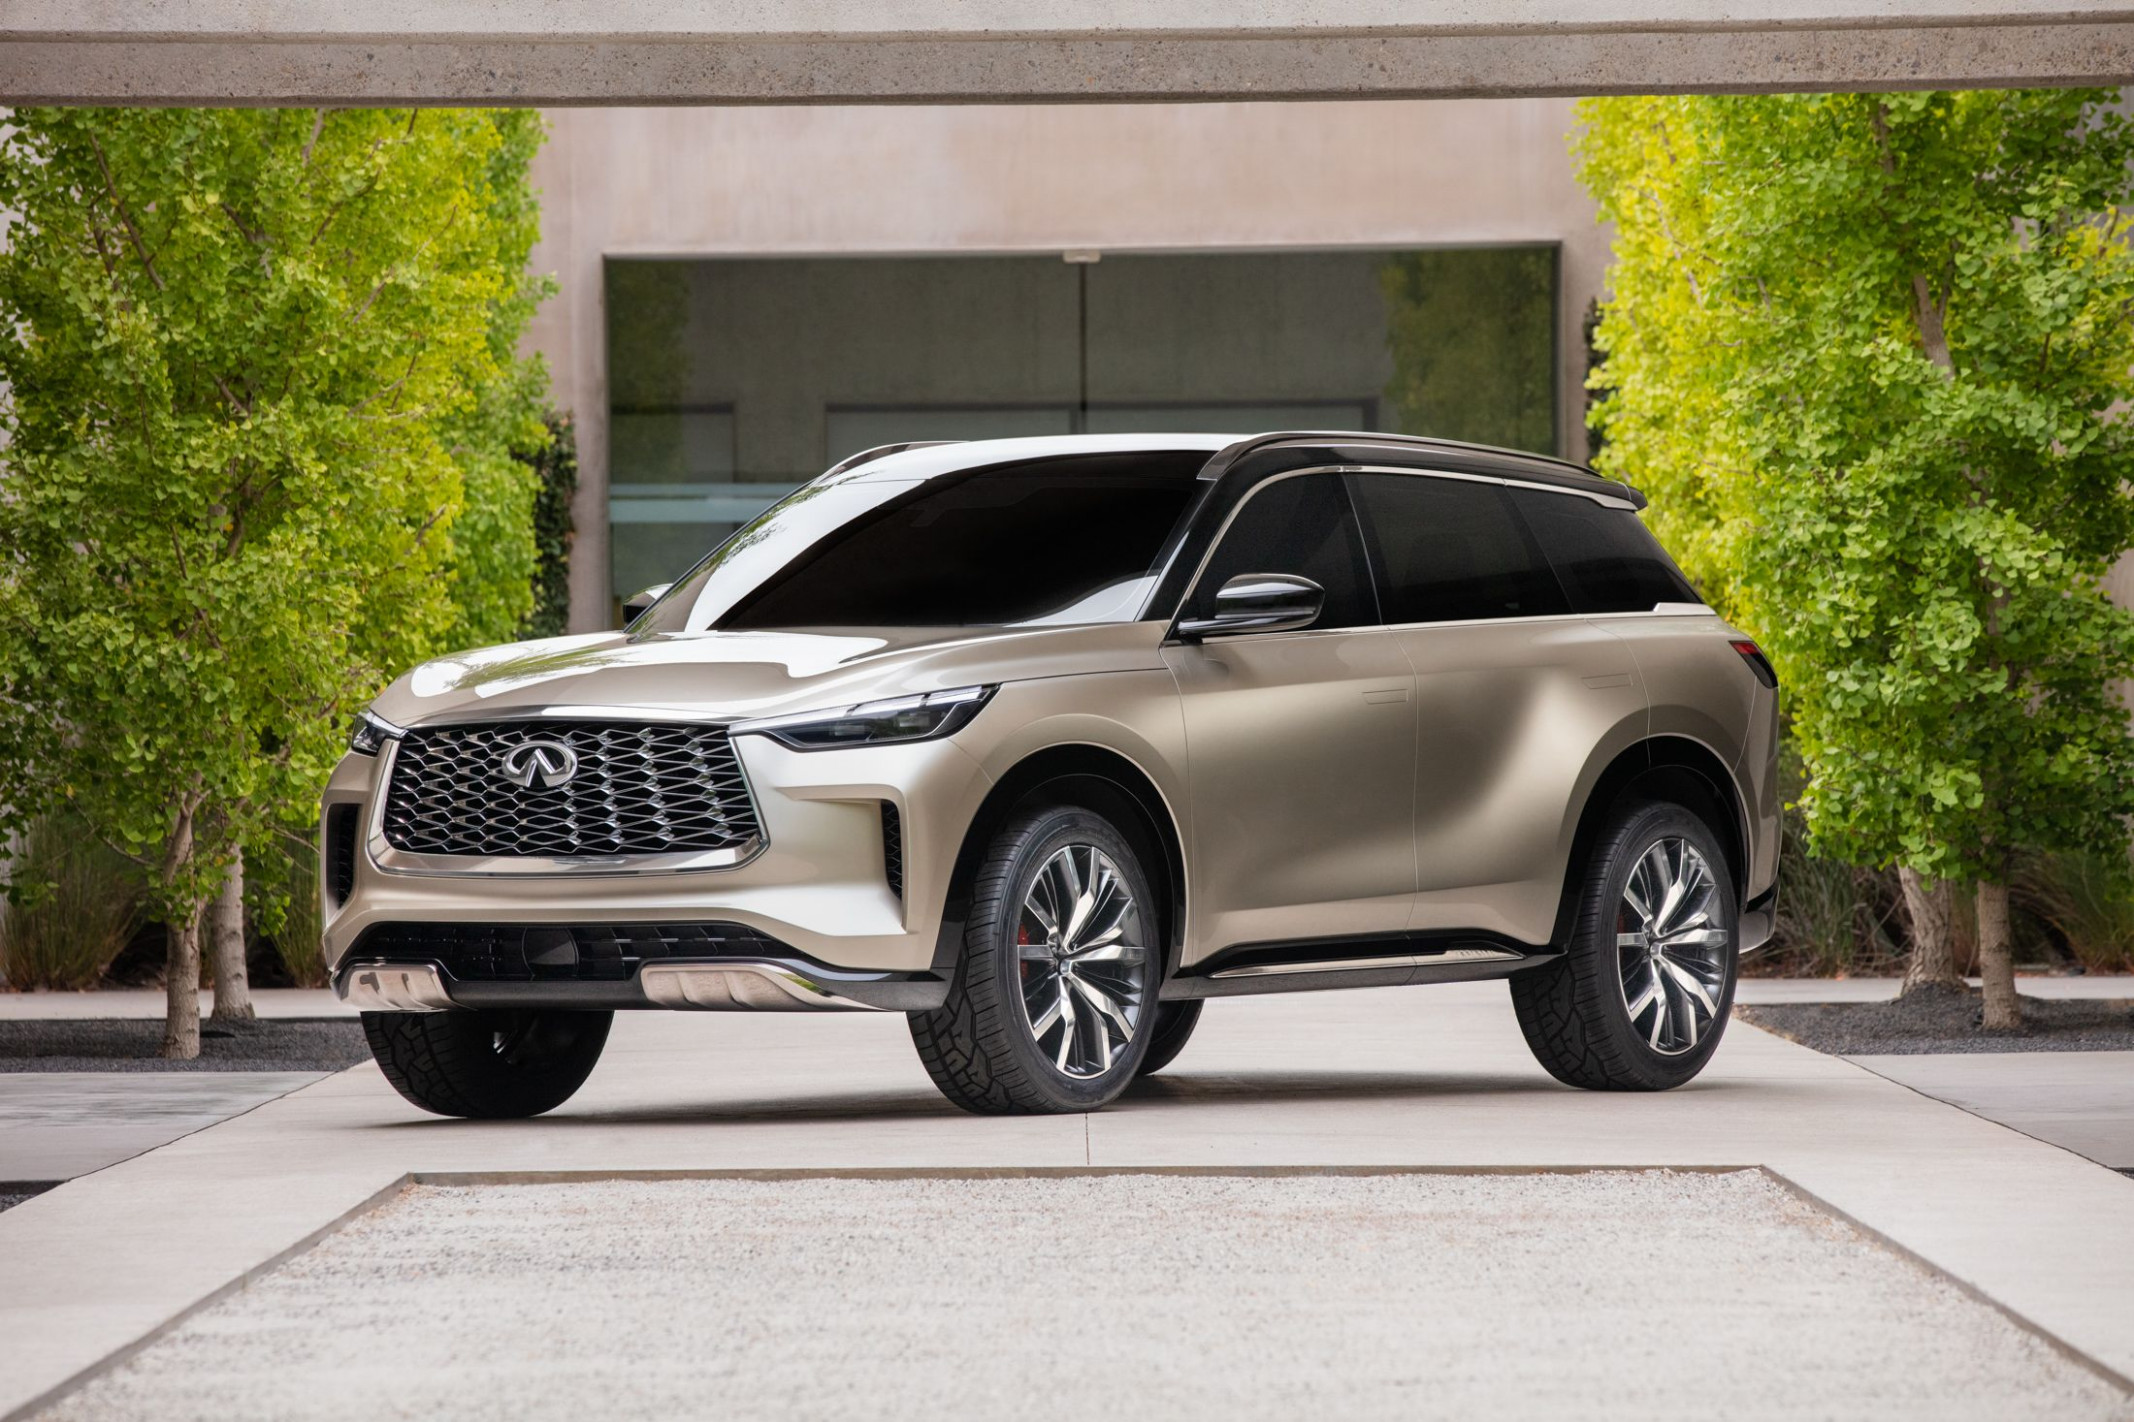 First Drive When Does The 2022 Infiniti Qx60 Come Out